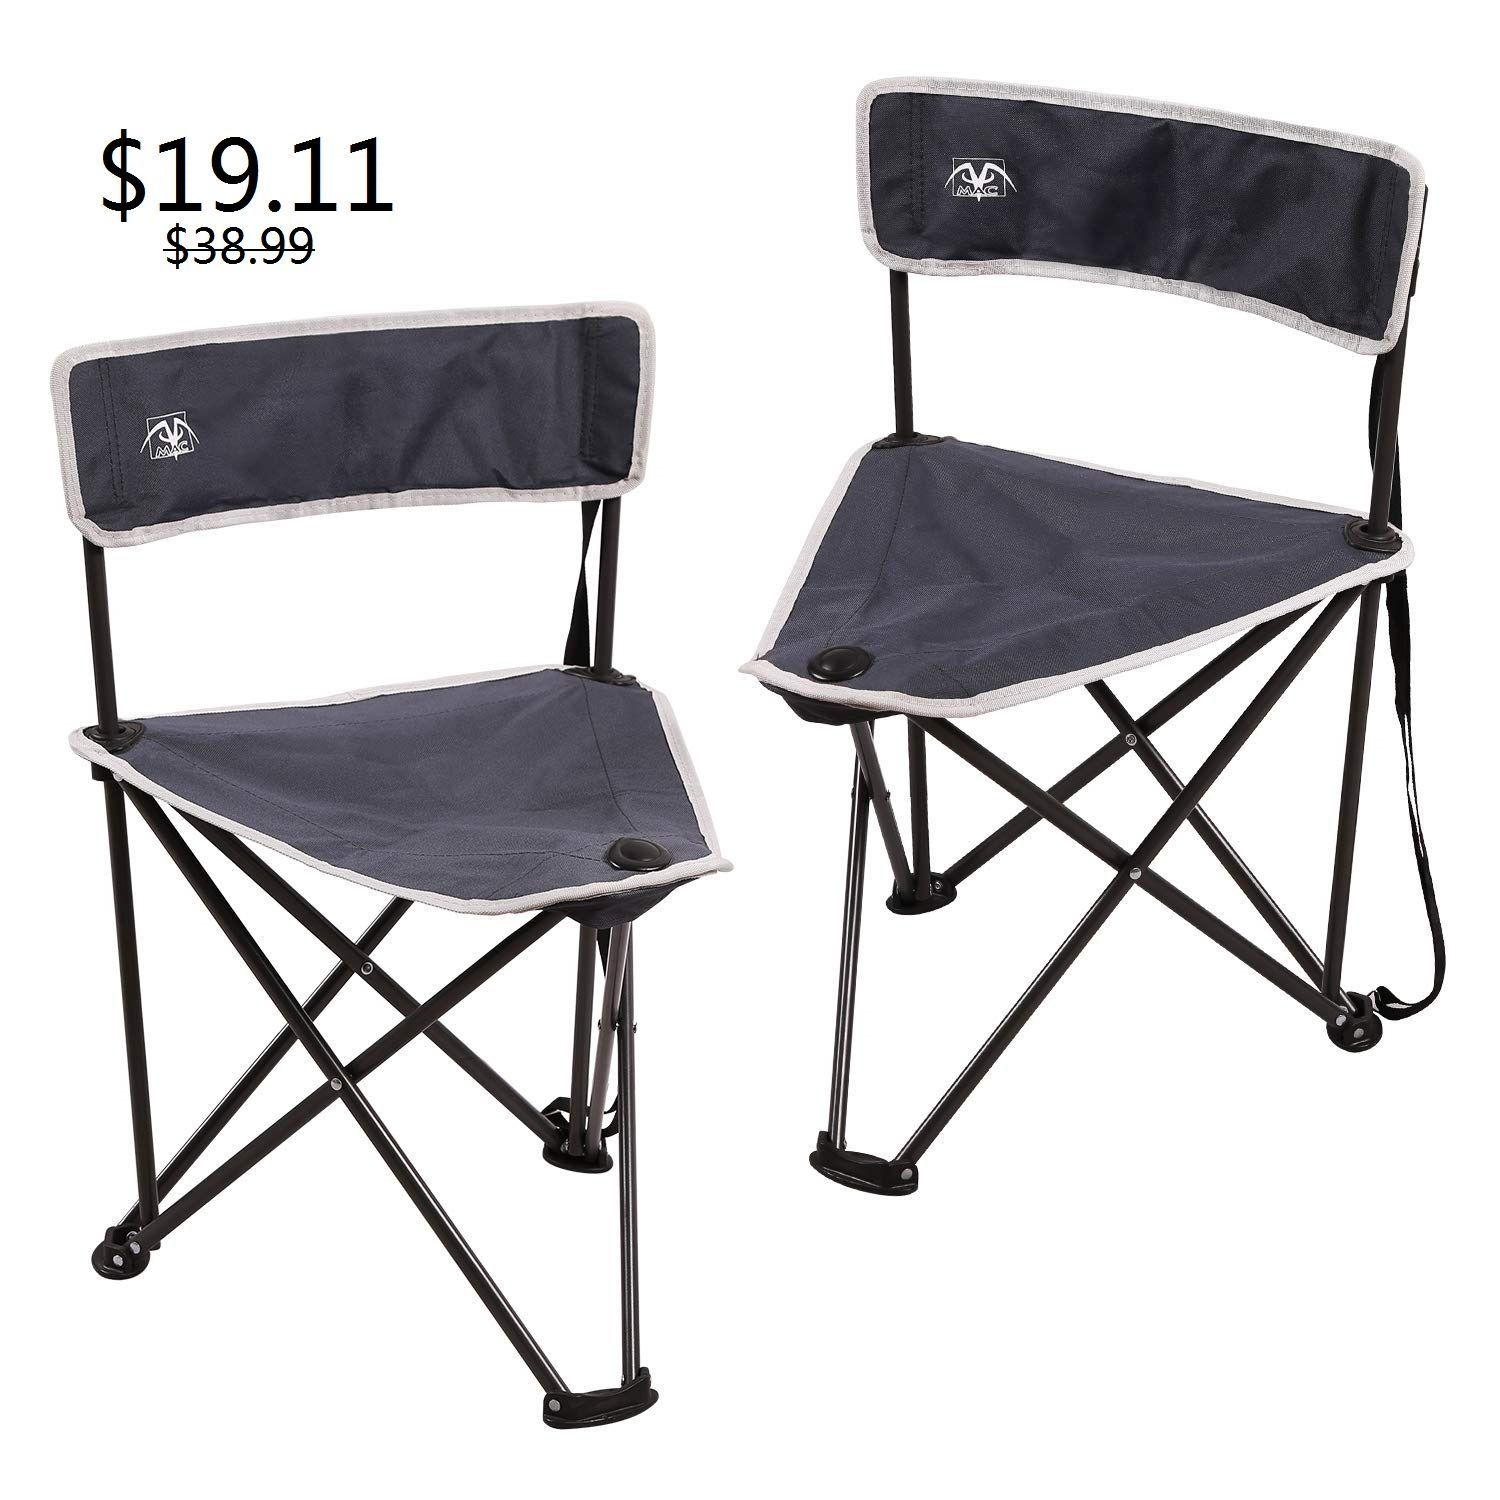 Pin By Vipon Deals On Usa Deals Camping Chairs Chair